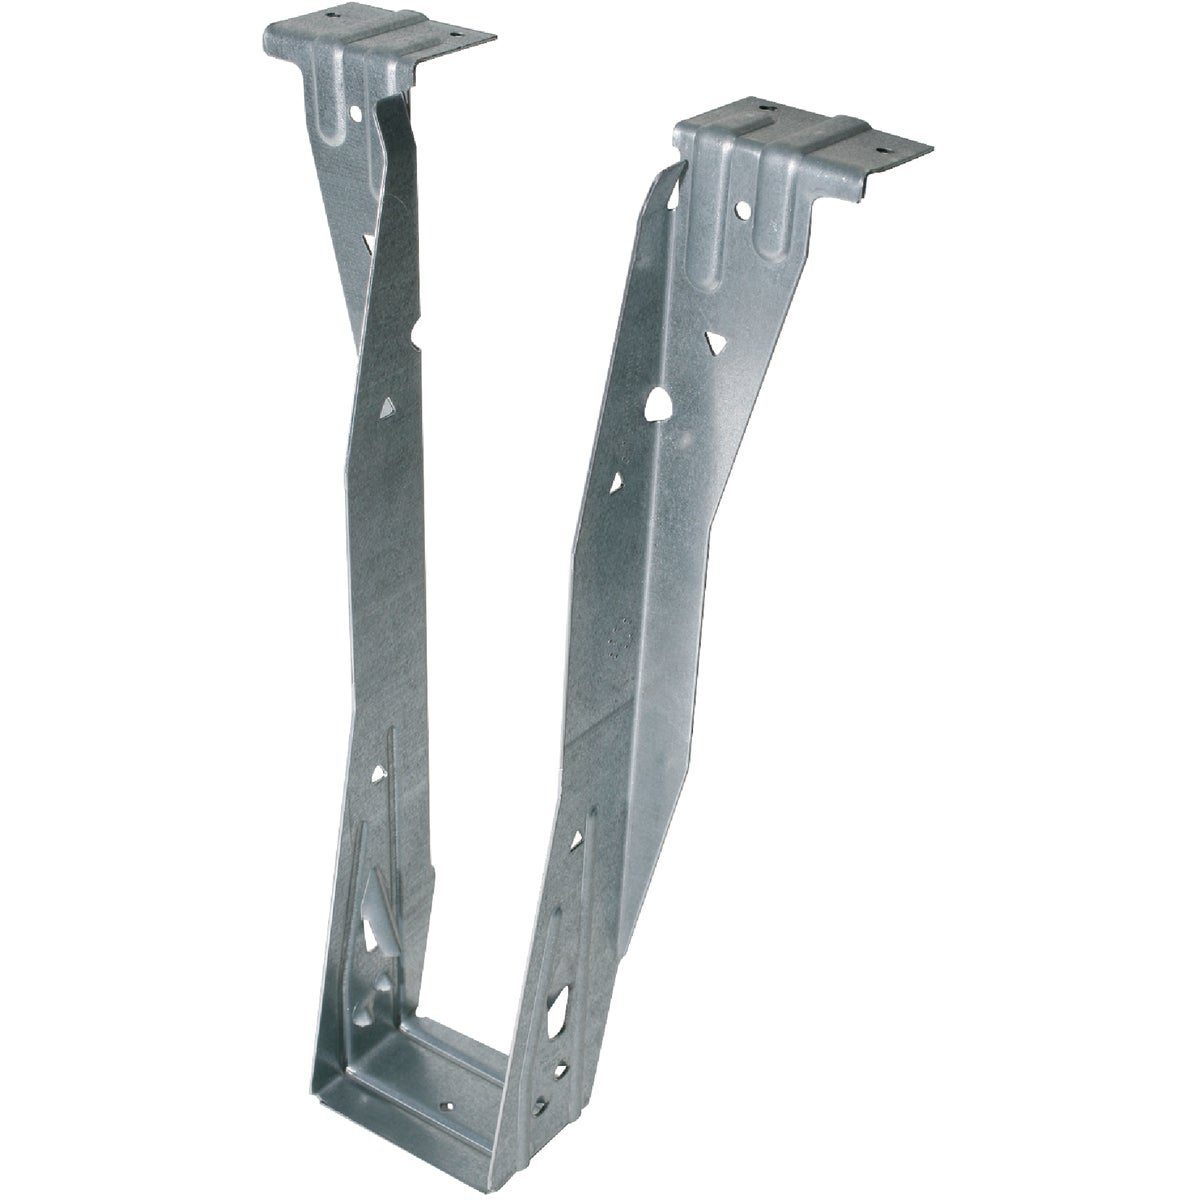 TOP FLANGE HANGER - ITS2.37/9.5 by Simpson Strong Tie